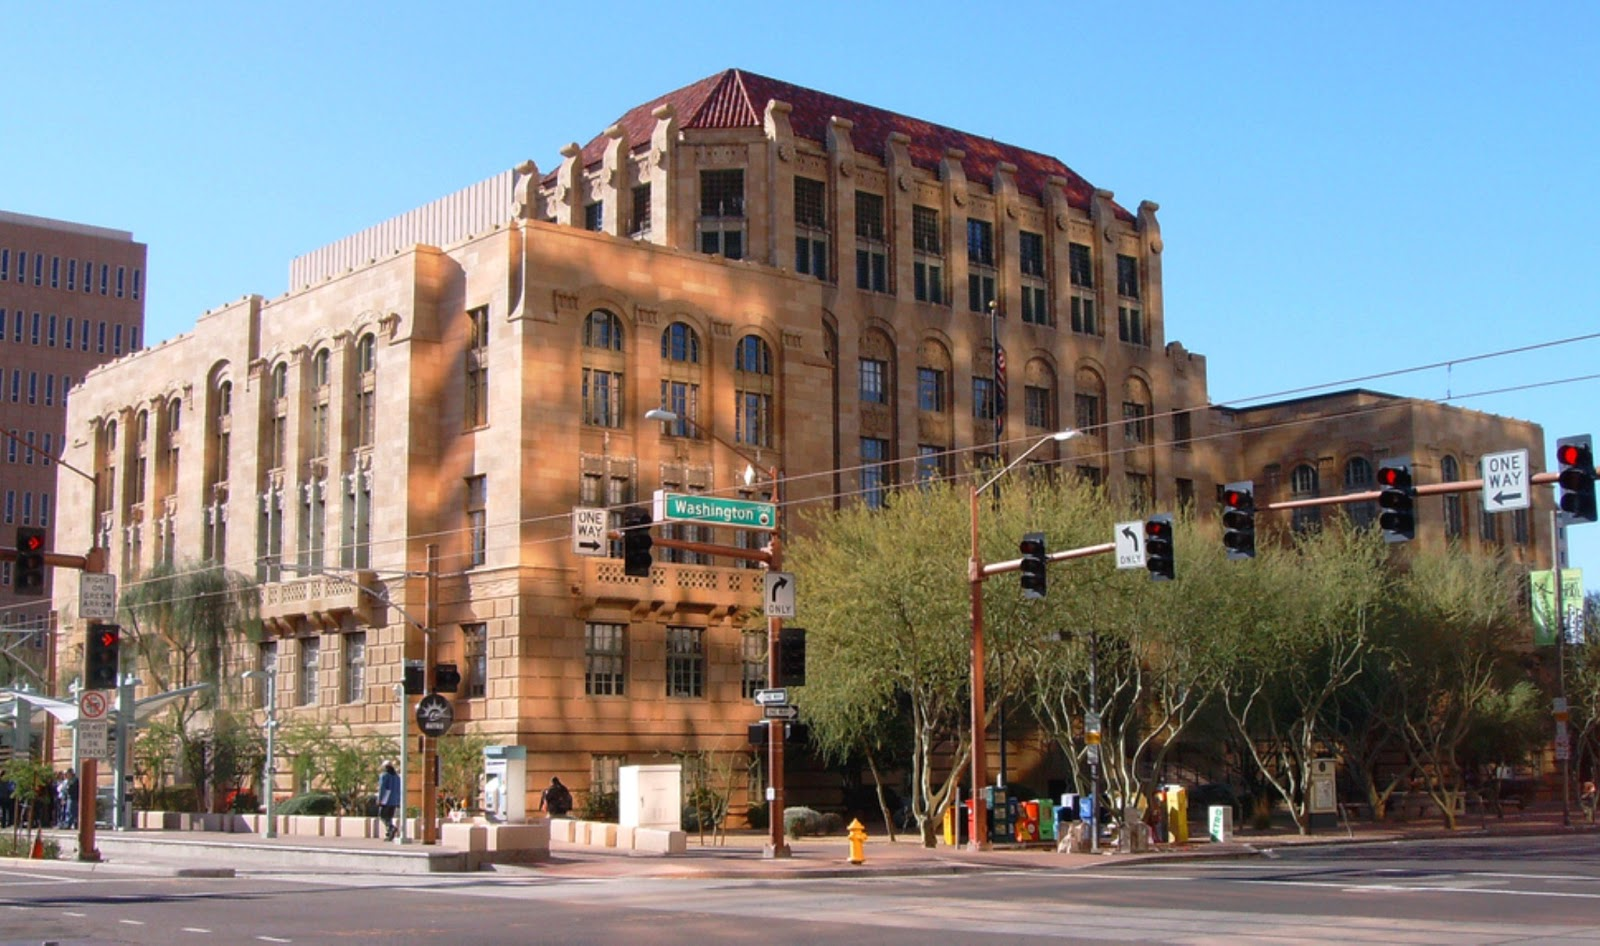 Phoenix (AZ) United States  city images : ... Phoenix. A voyage to Phoenix, Arizona, United States, North America